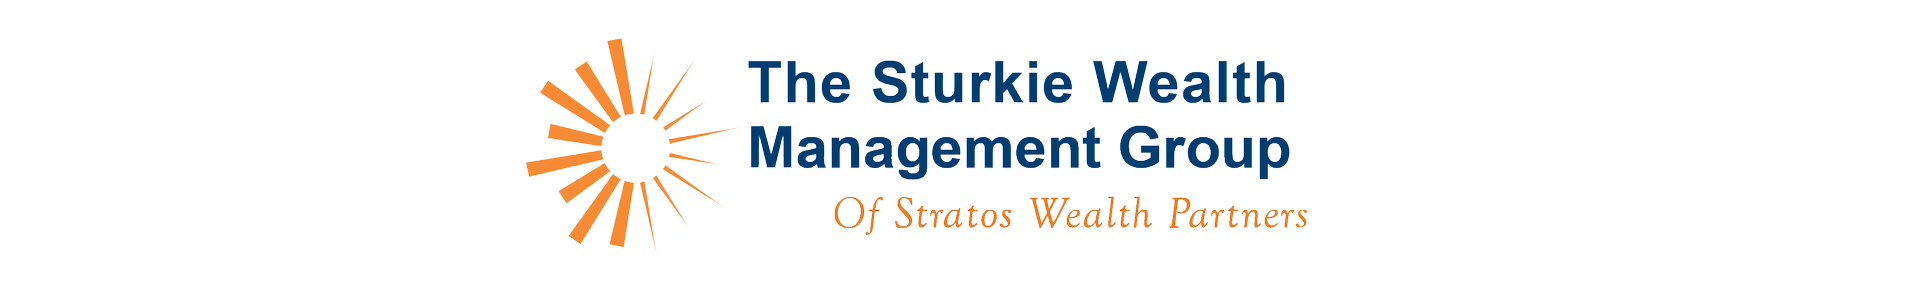 Sturkie Wealth Management Group